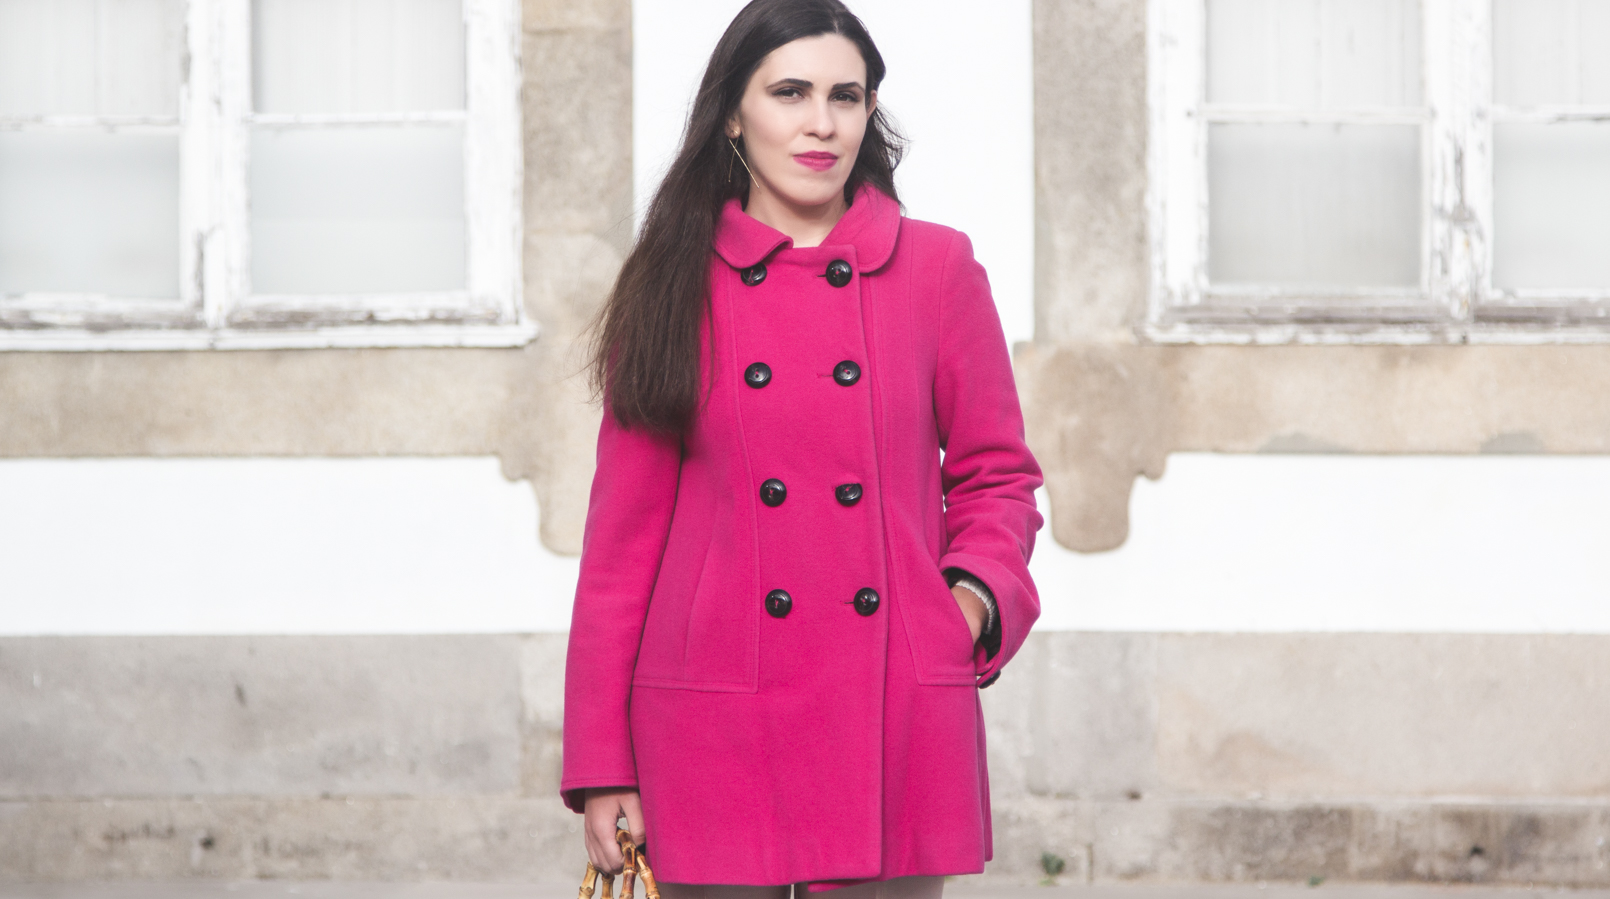 Le Fashionaire 50 shades of pink blogger catarine martins fashion inspiration wool pink coat outerwear front buttons zara 7290F EN